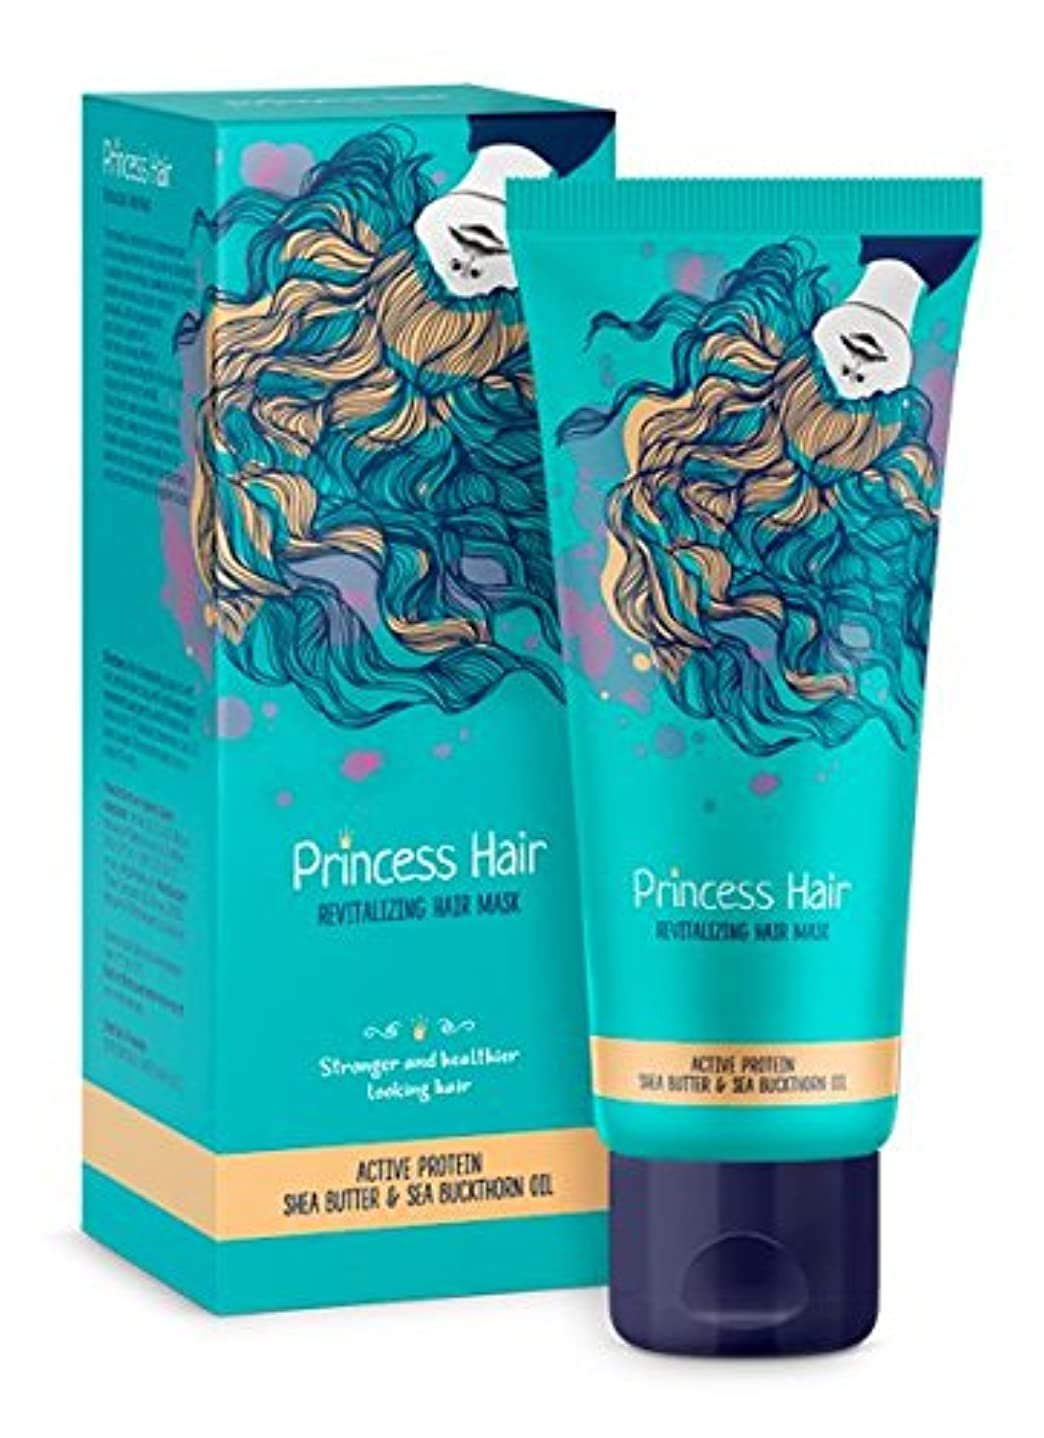 スカーフ芽エキス育毛マスク Princess Hair, Mask for hair growth 75ml Hendel's Garden